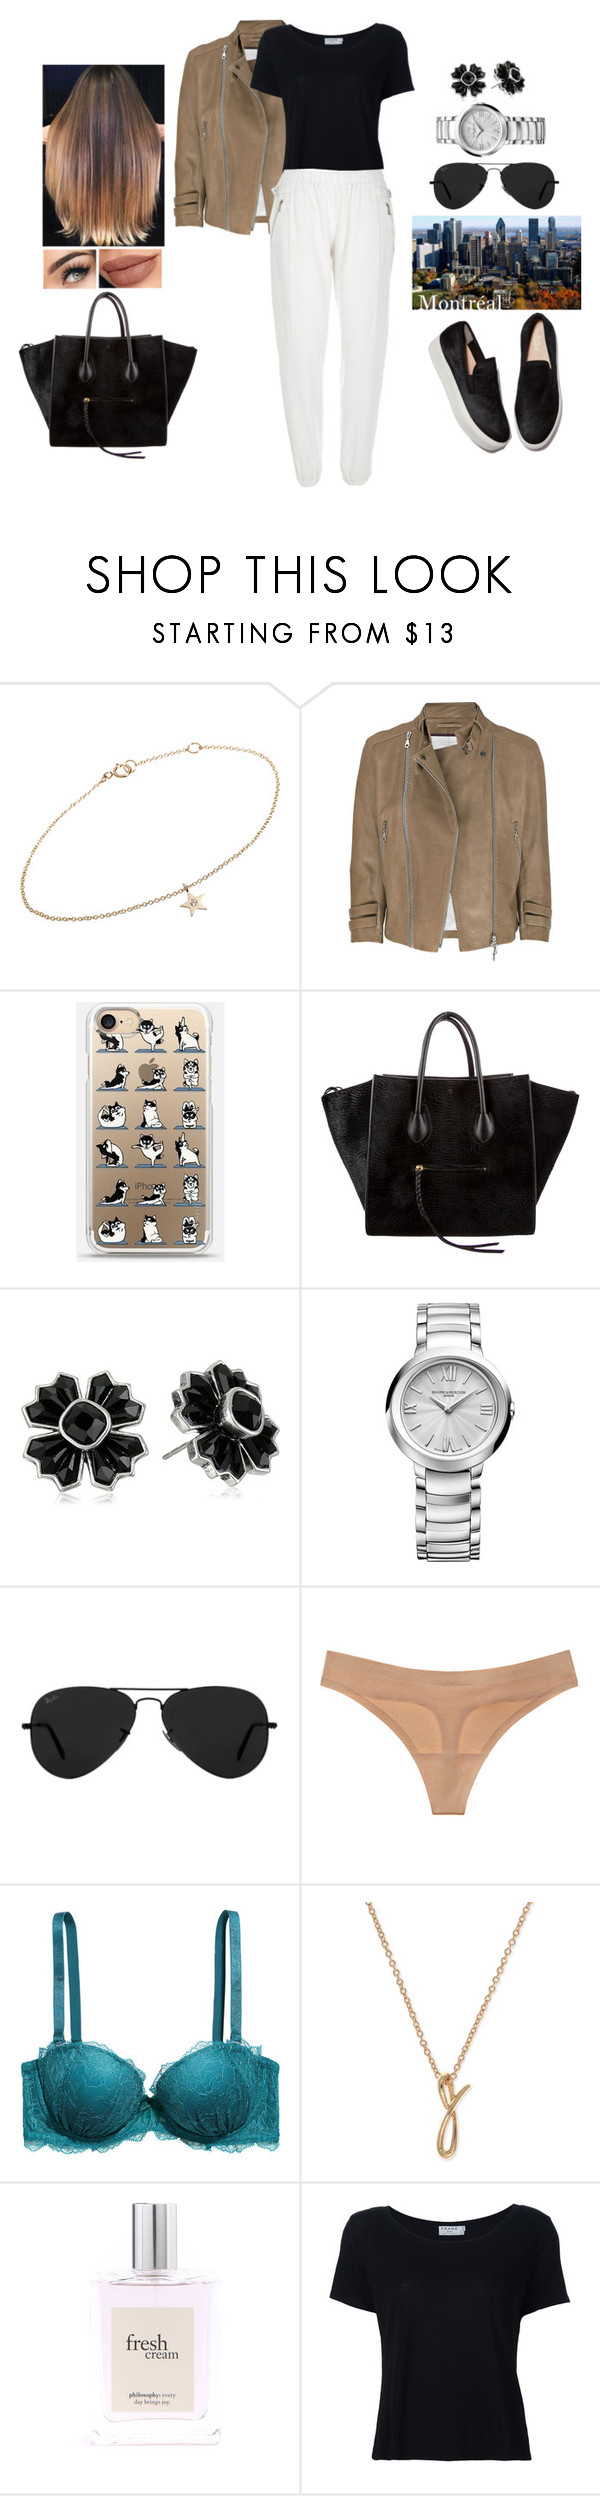 """""""Travelling to Montreal, Canada 🇨🇦"""" by teodoramaria98 ❤ liked on Polyvore featuring Minor Obsessions, McQ by Alexander McQueen, CÉLINE, Marc Jacobs, Baume & Mercier, Ray-Ban, Victoria's Secret, H&M, Anne Klein and philosophy"""